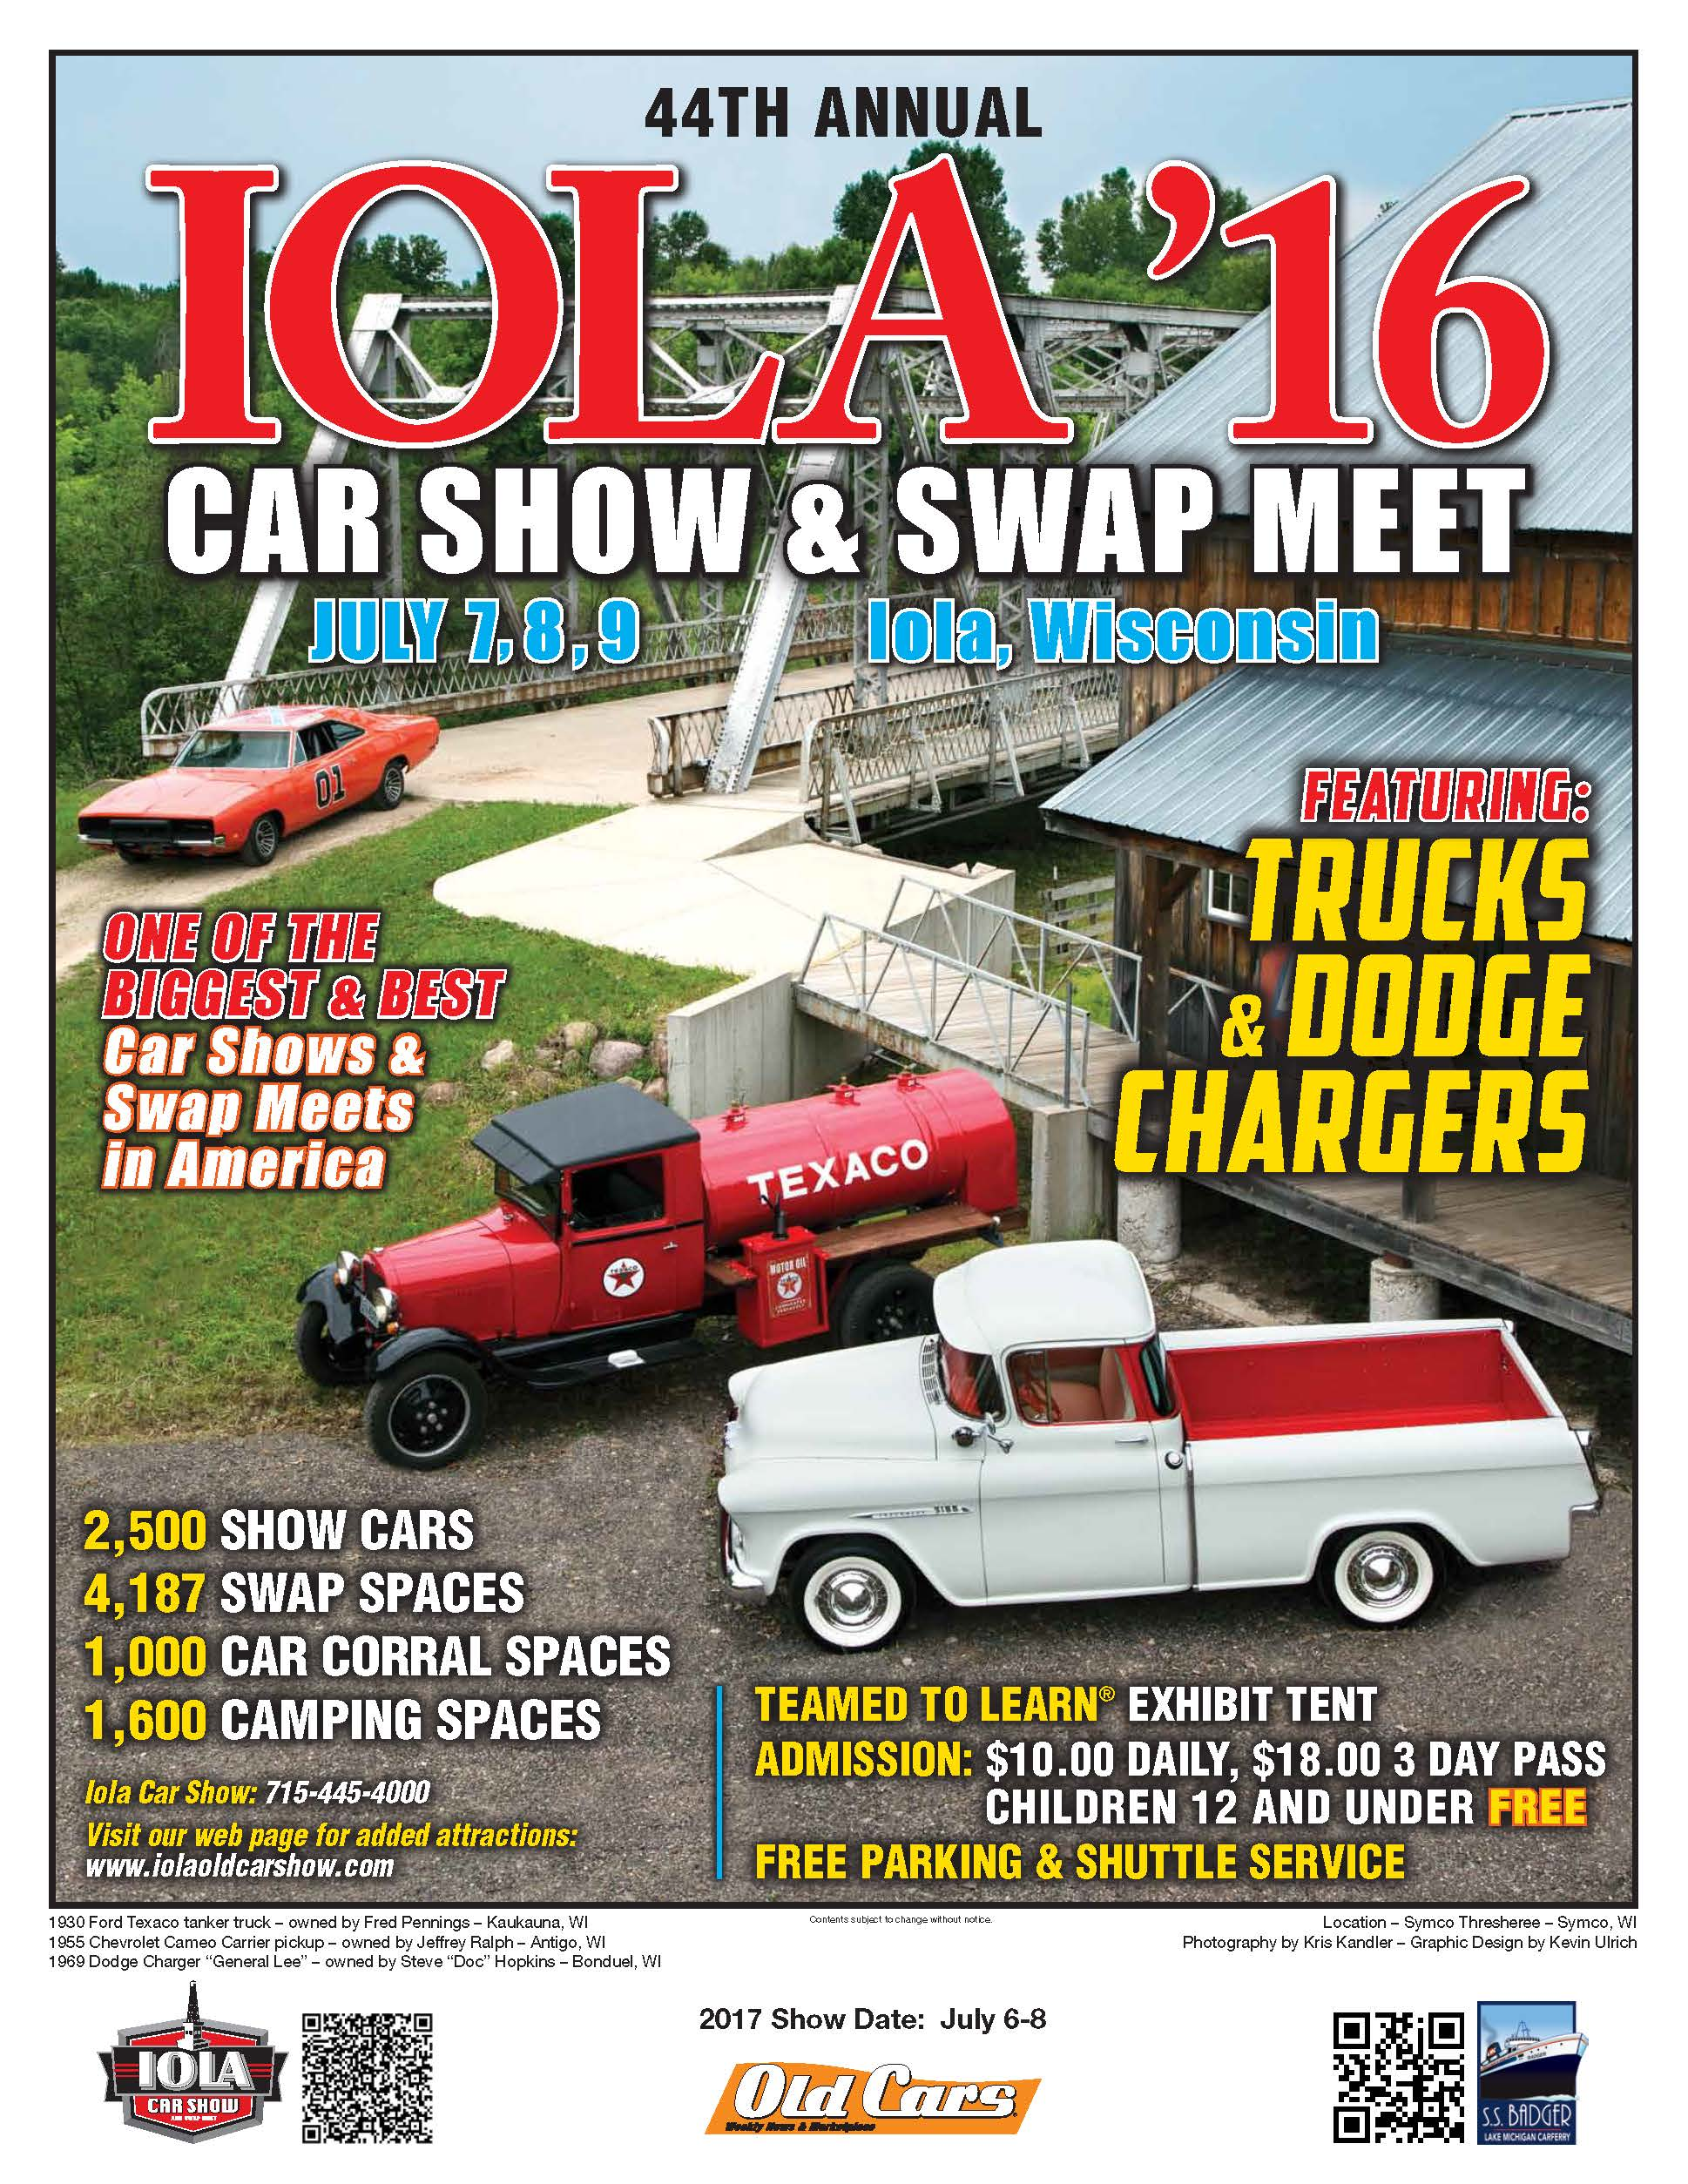 2016 CAR SHOW POSTER - Jo Coddington